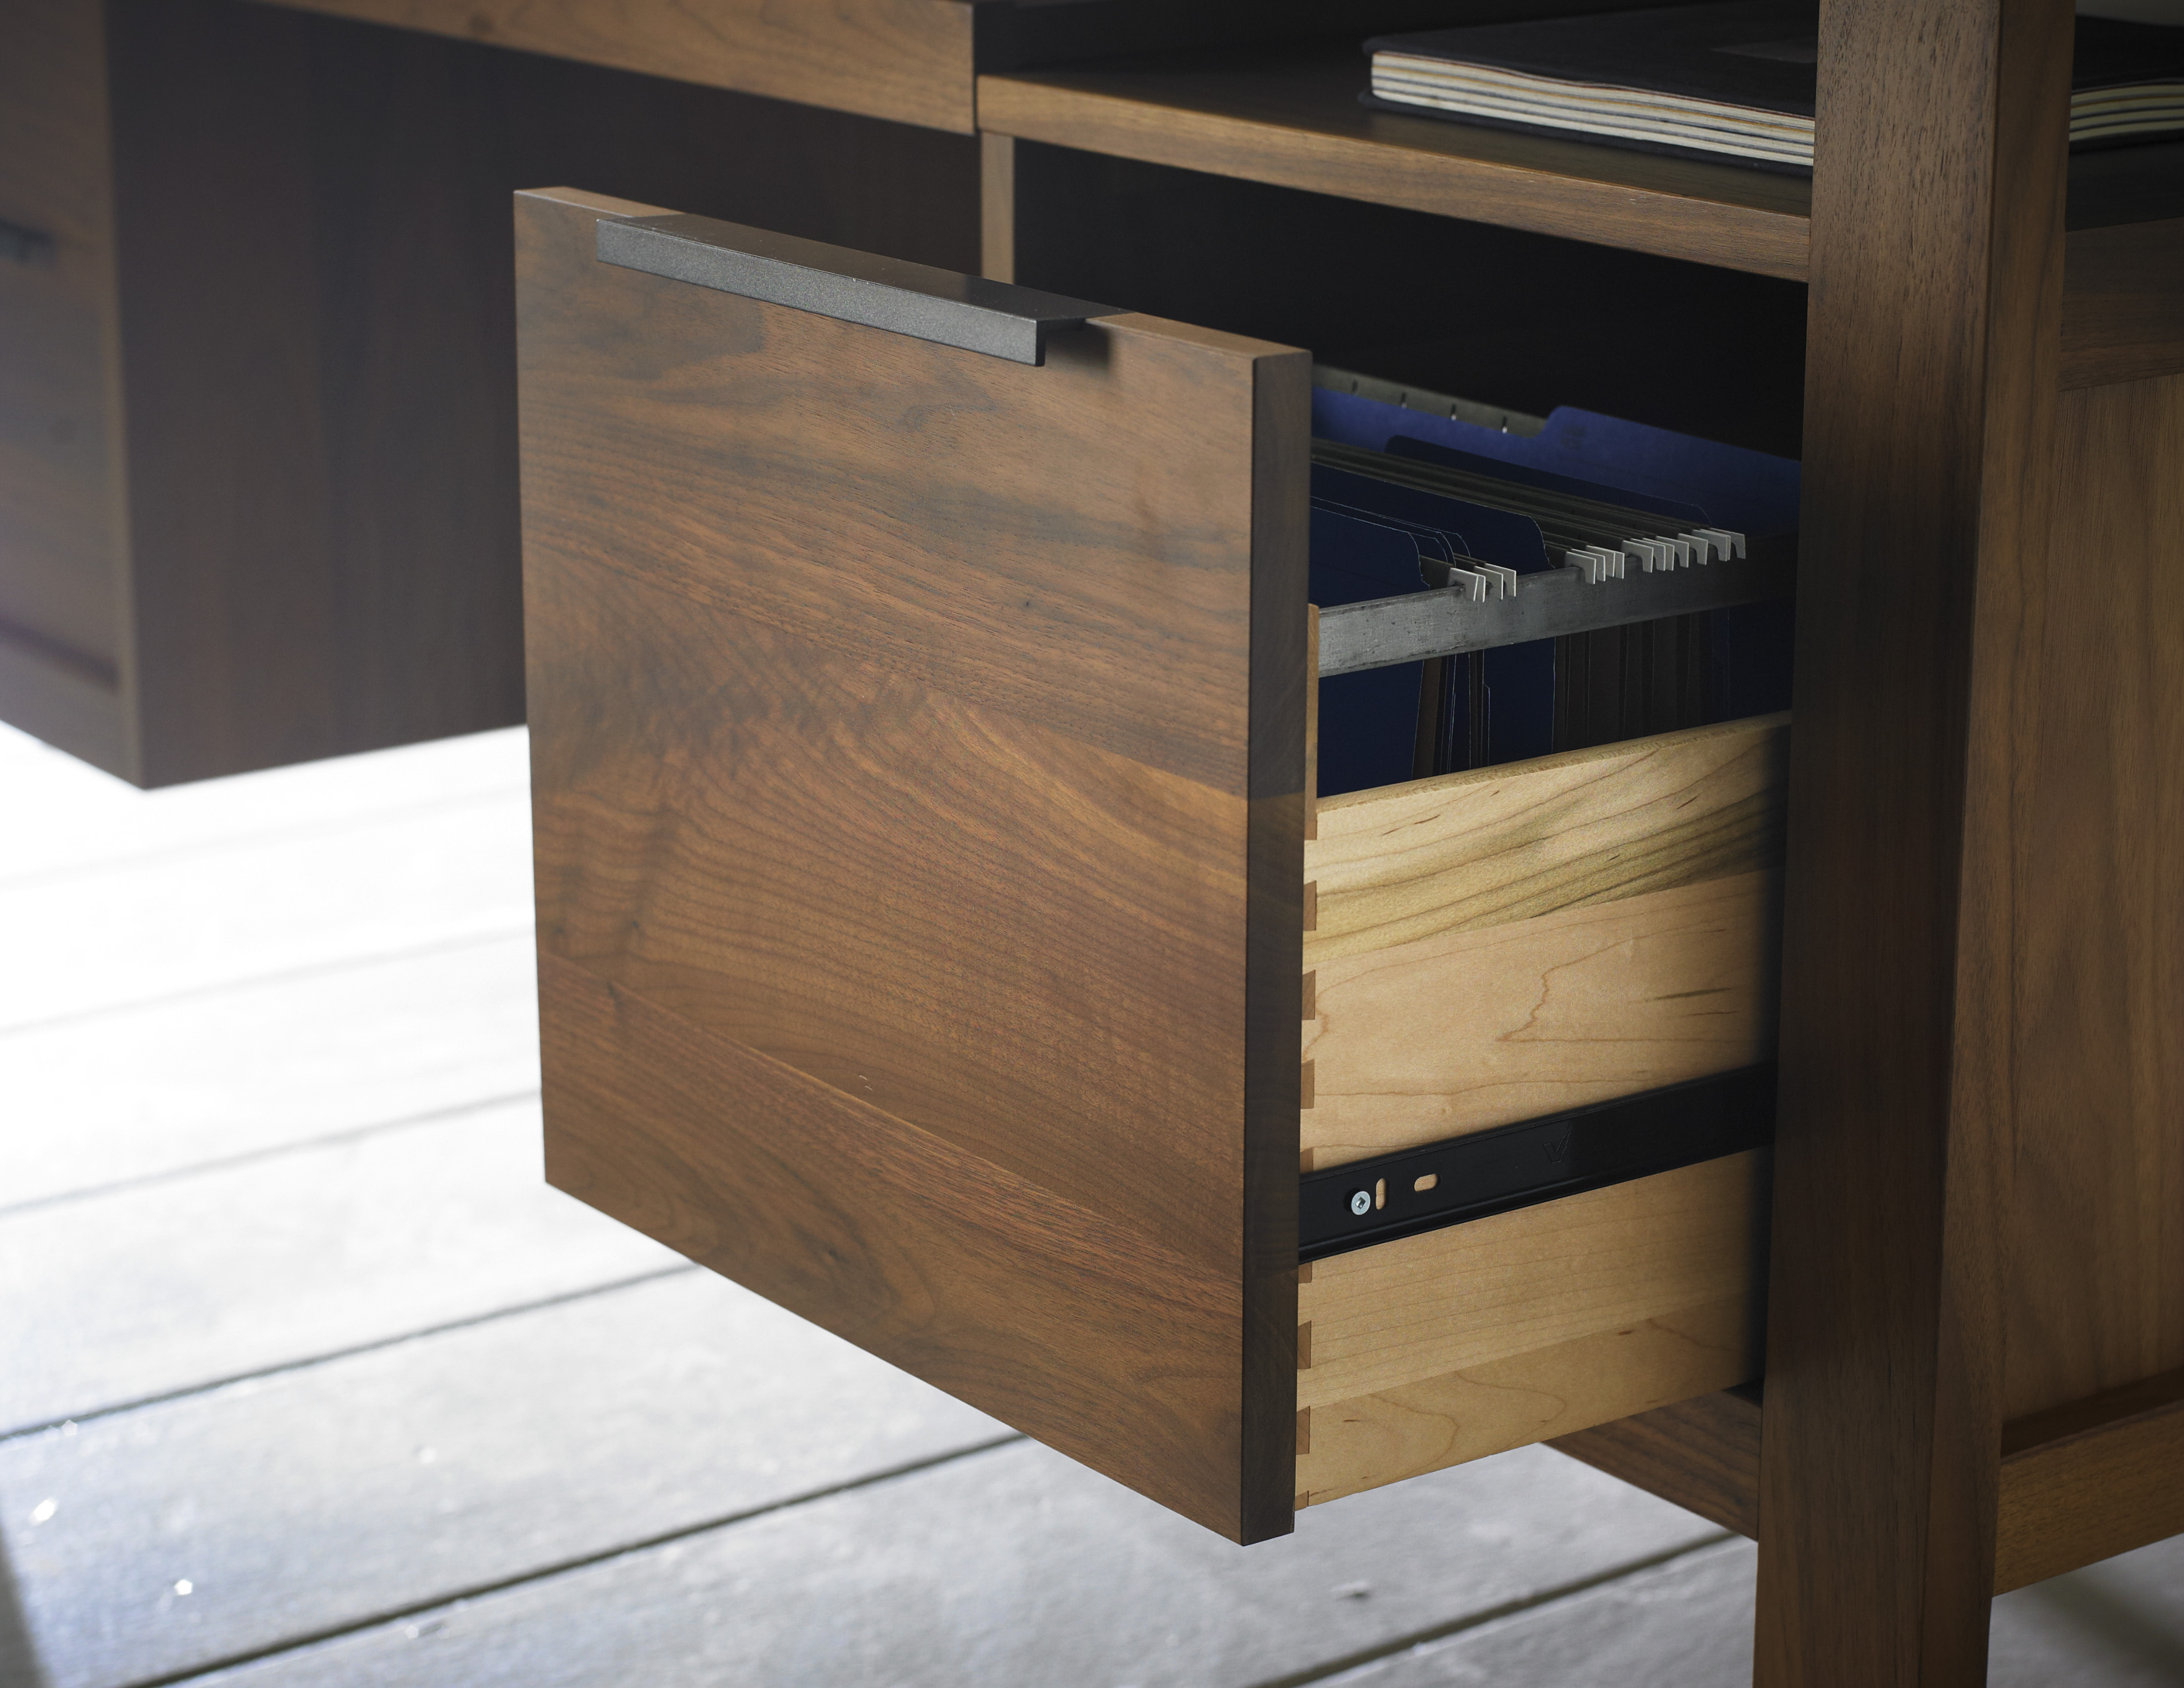 filing fice marvelous wood puter cupboard drawer desk with cabinet drawers shaped of file l